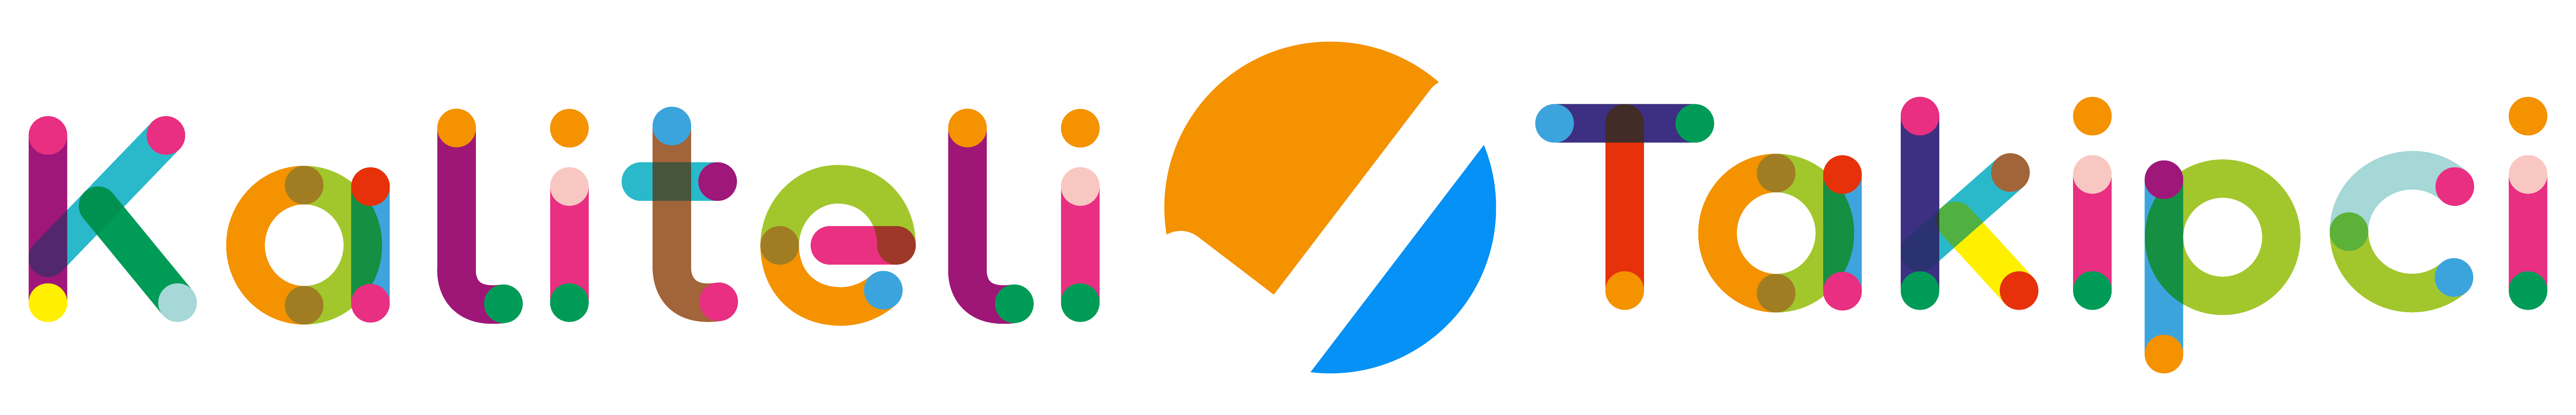 site-logo-467670.png